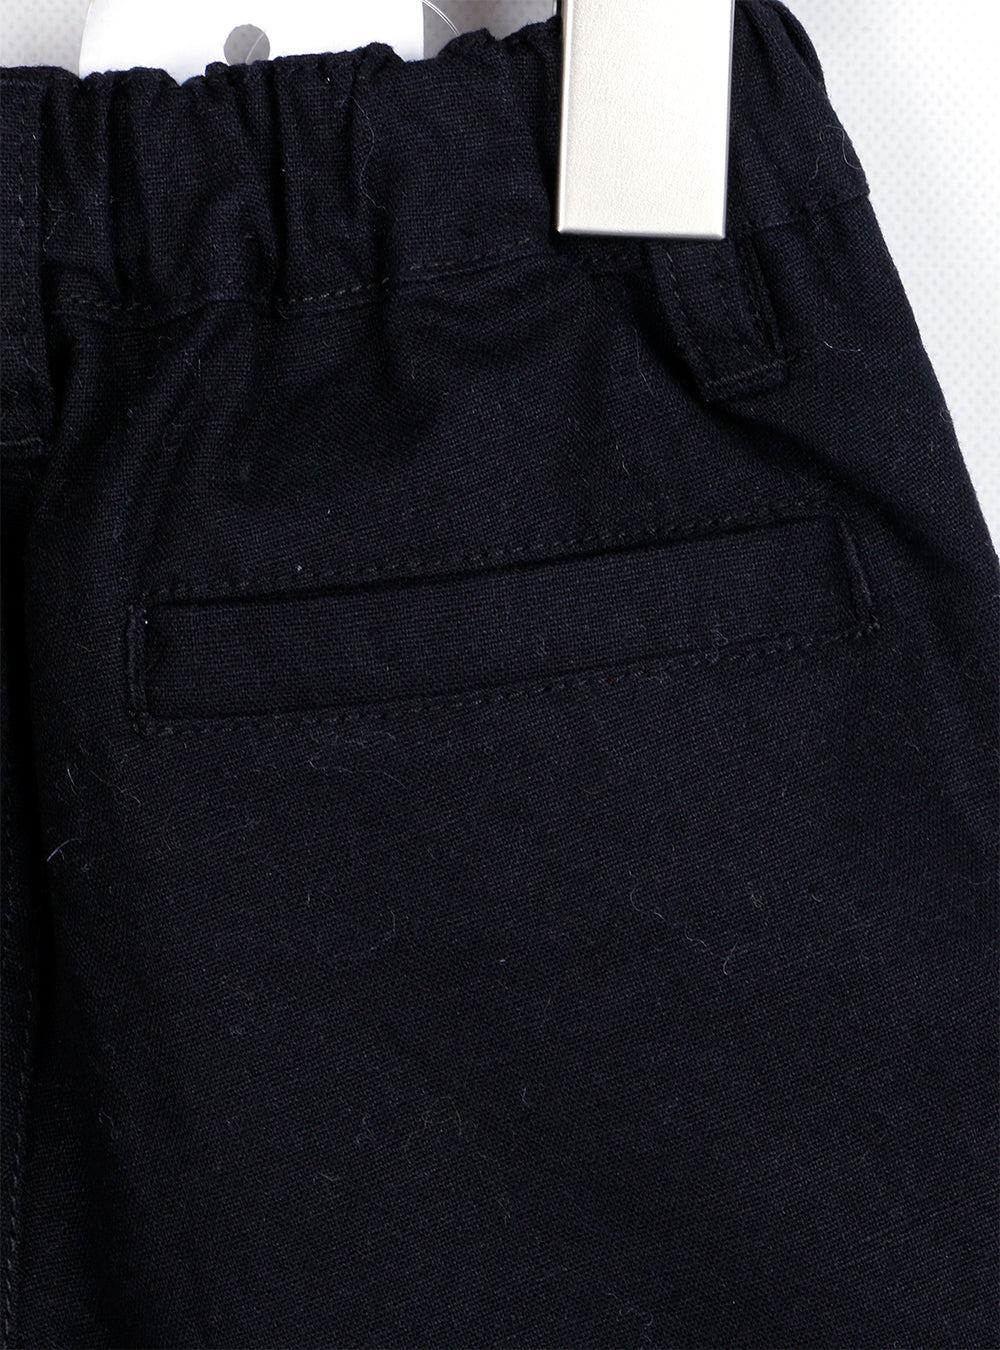 Linen Roll-up Pants (Yellow/Black)